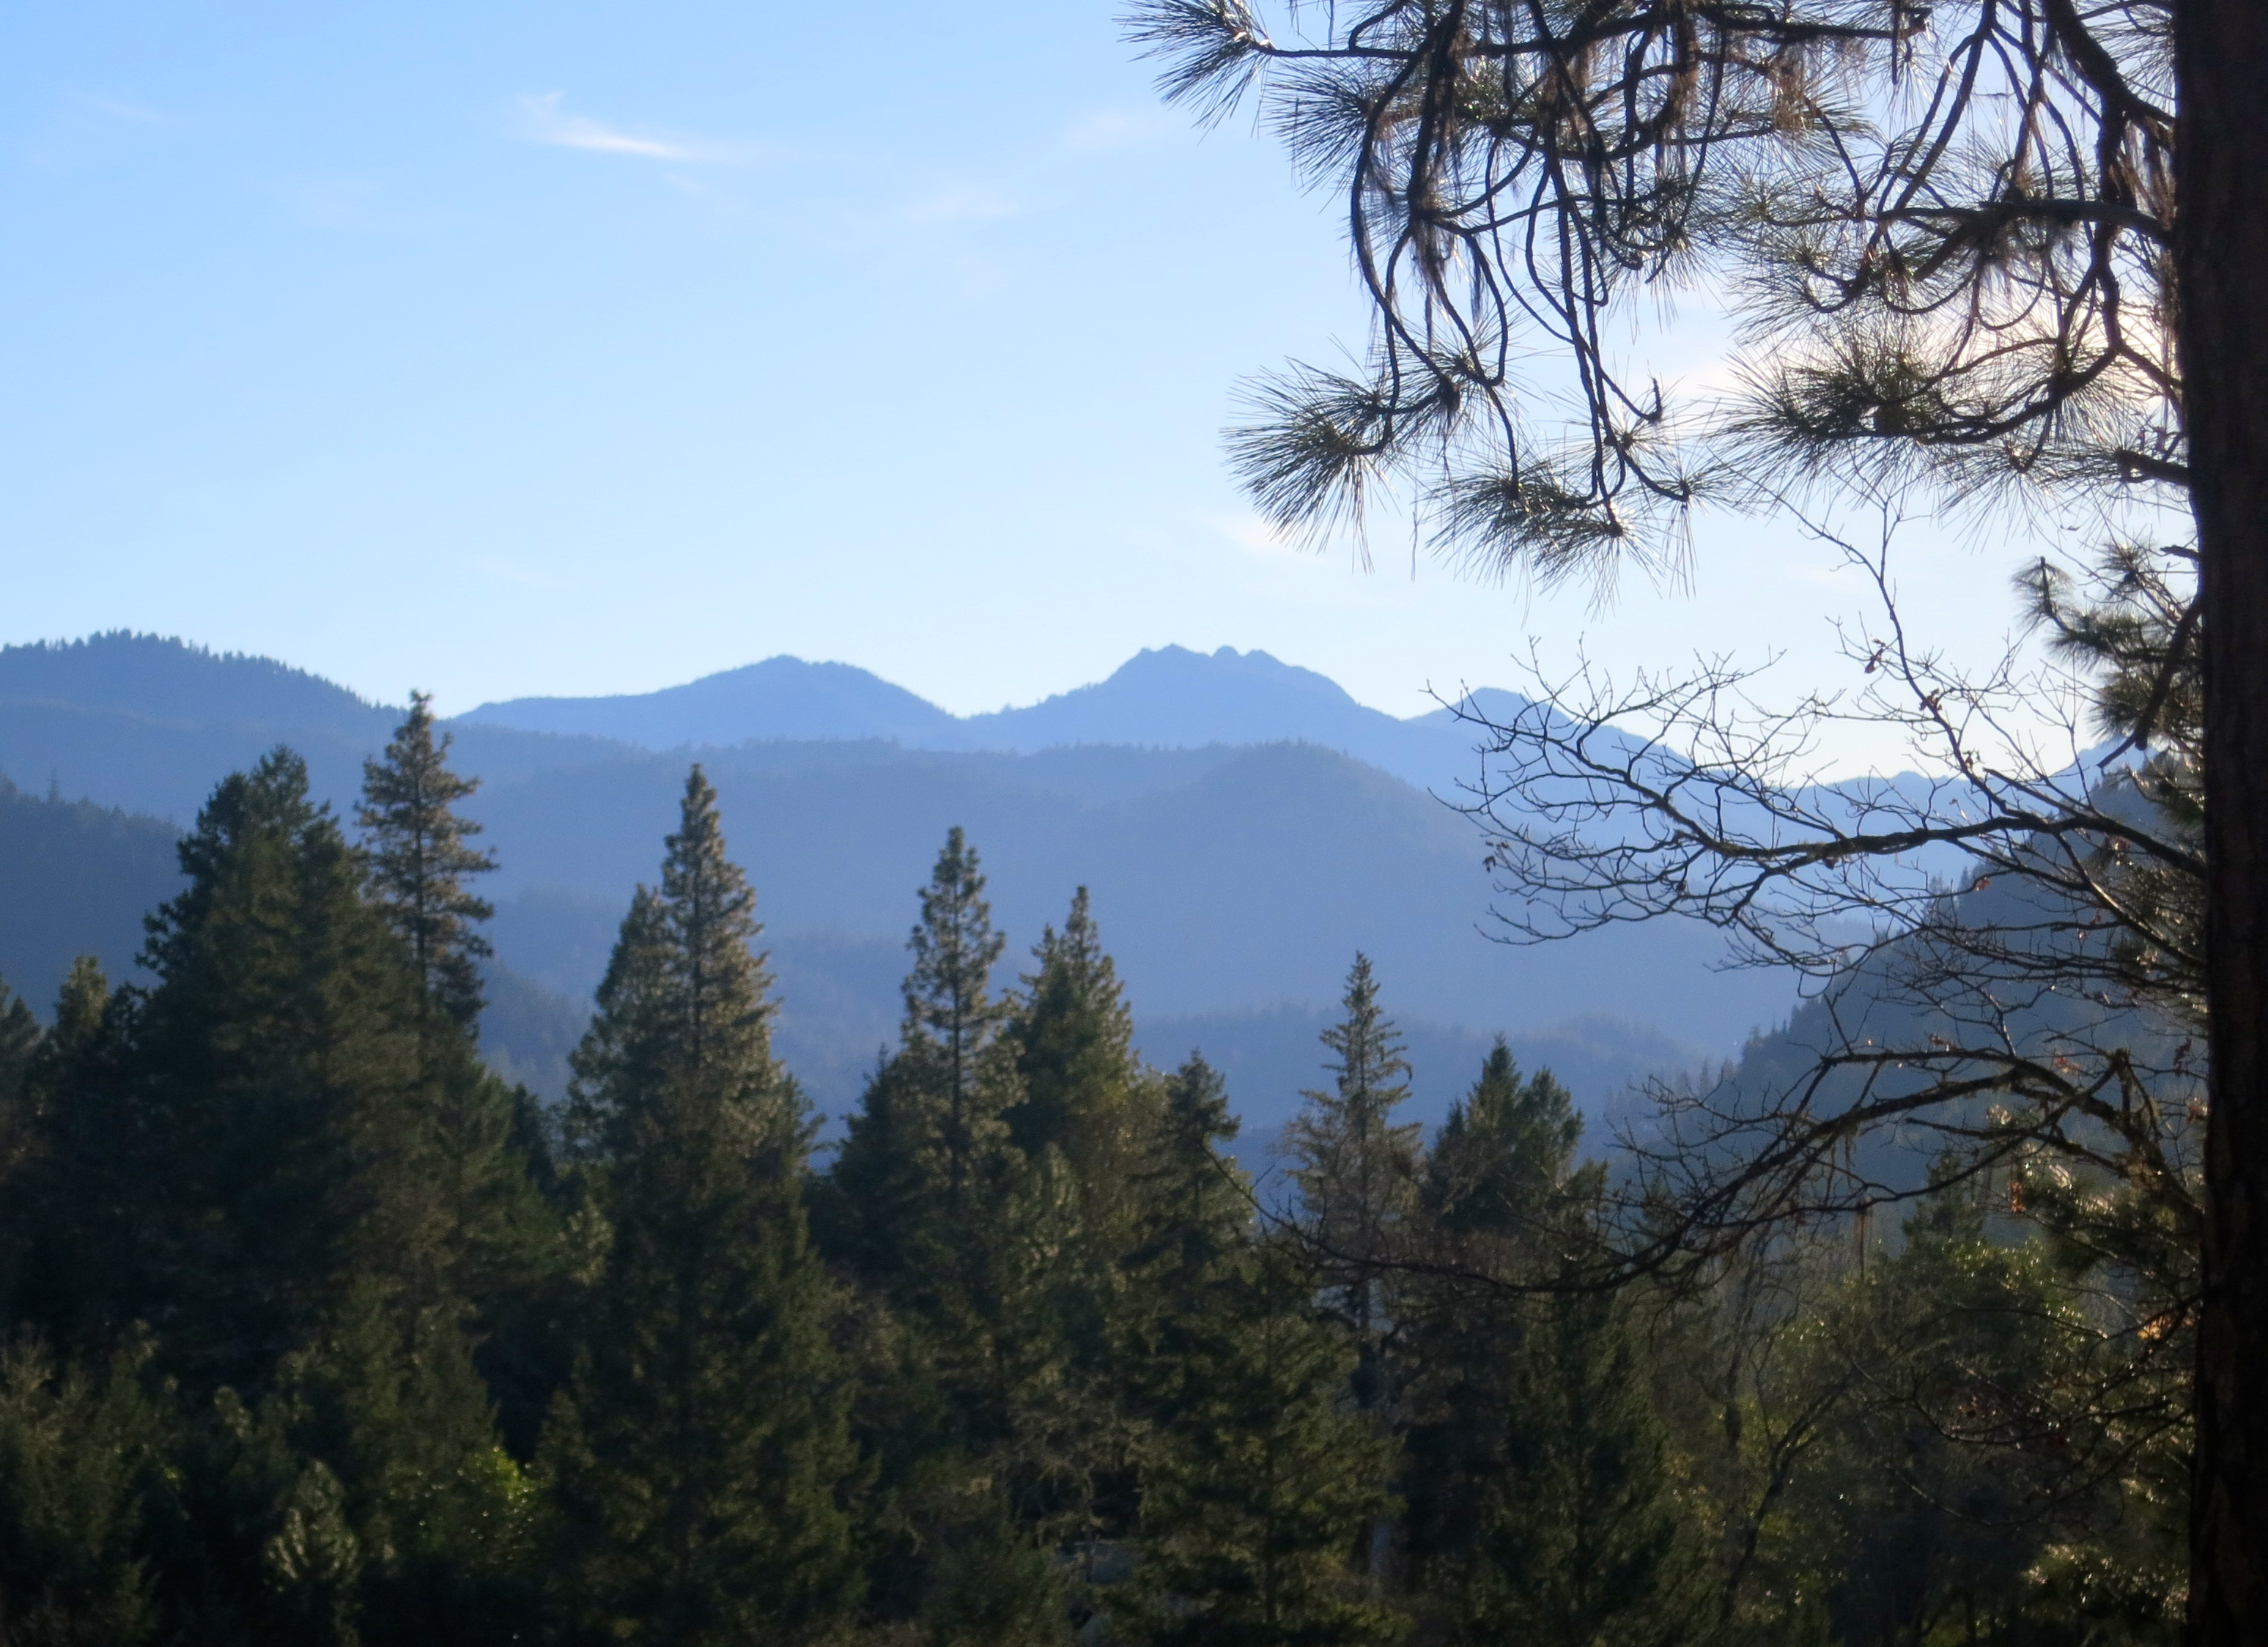 View of Red Buttes from Upper Applegate Valley, Oregon. Photo by Curtis Mekemson.